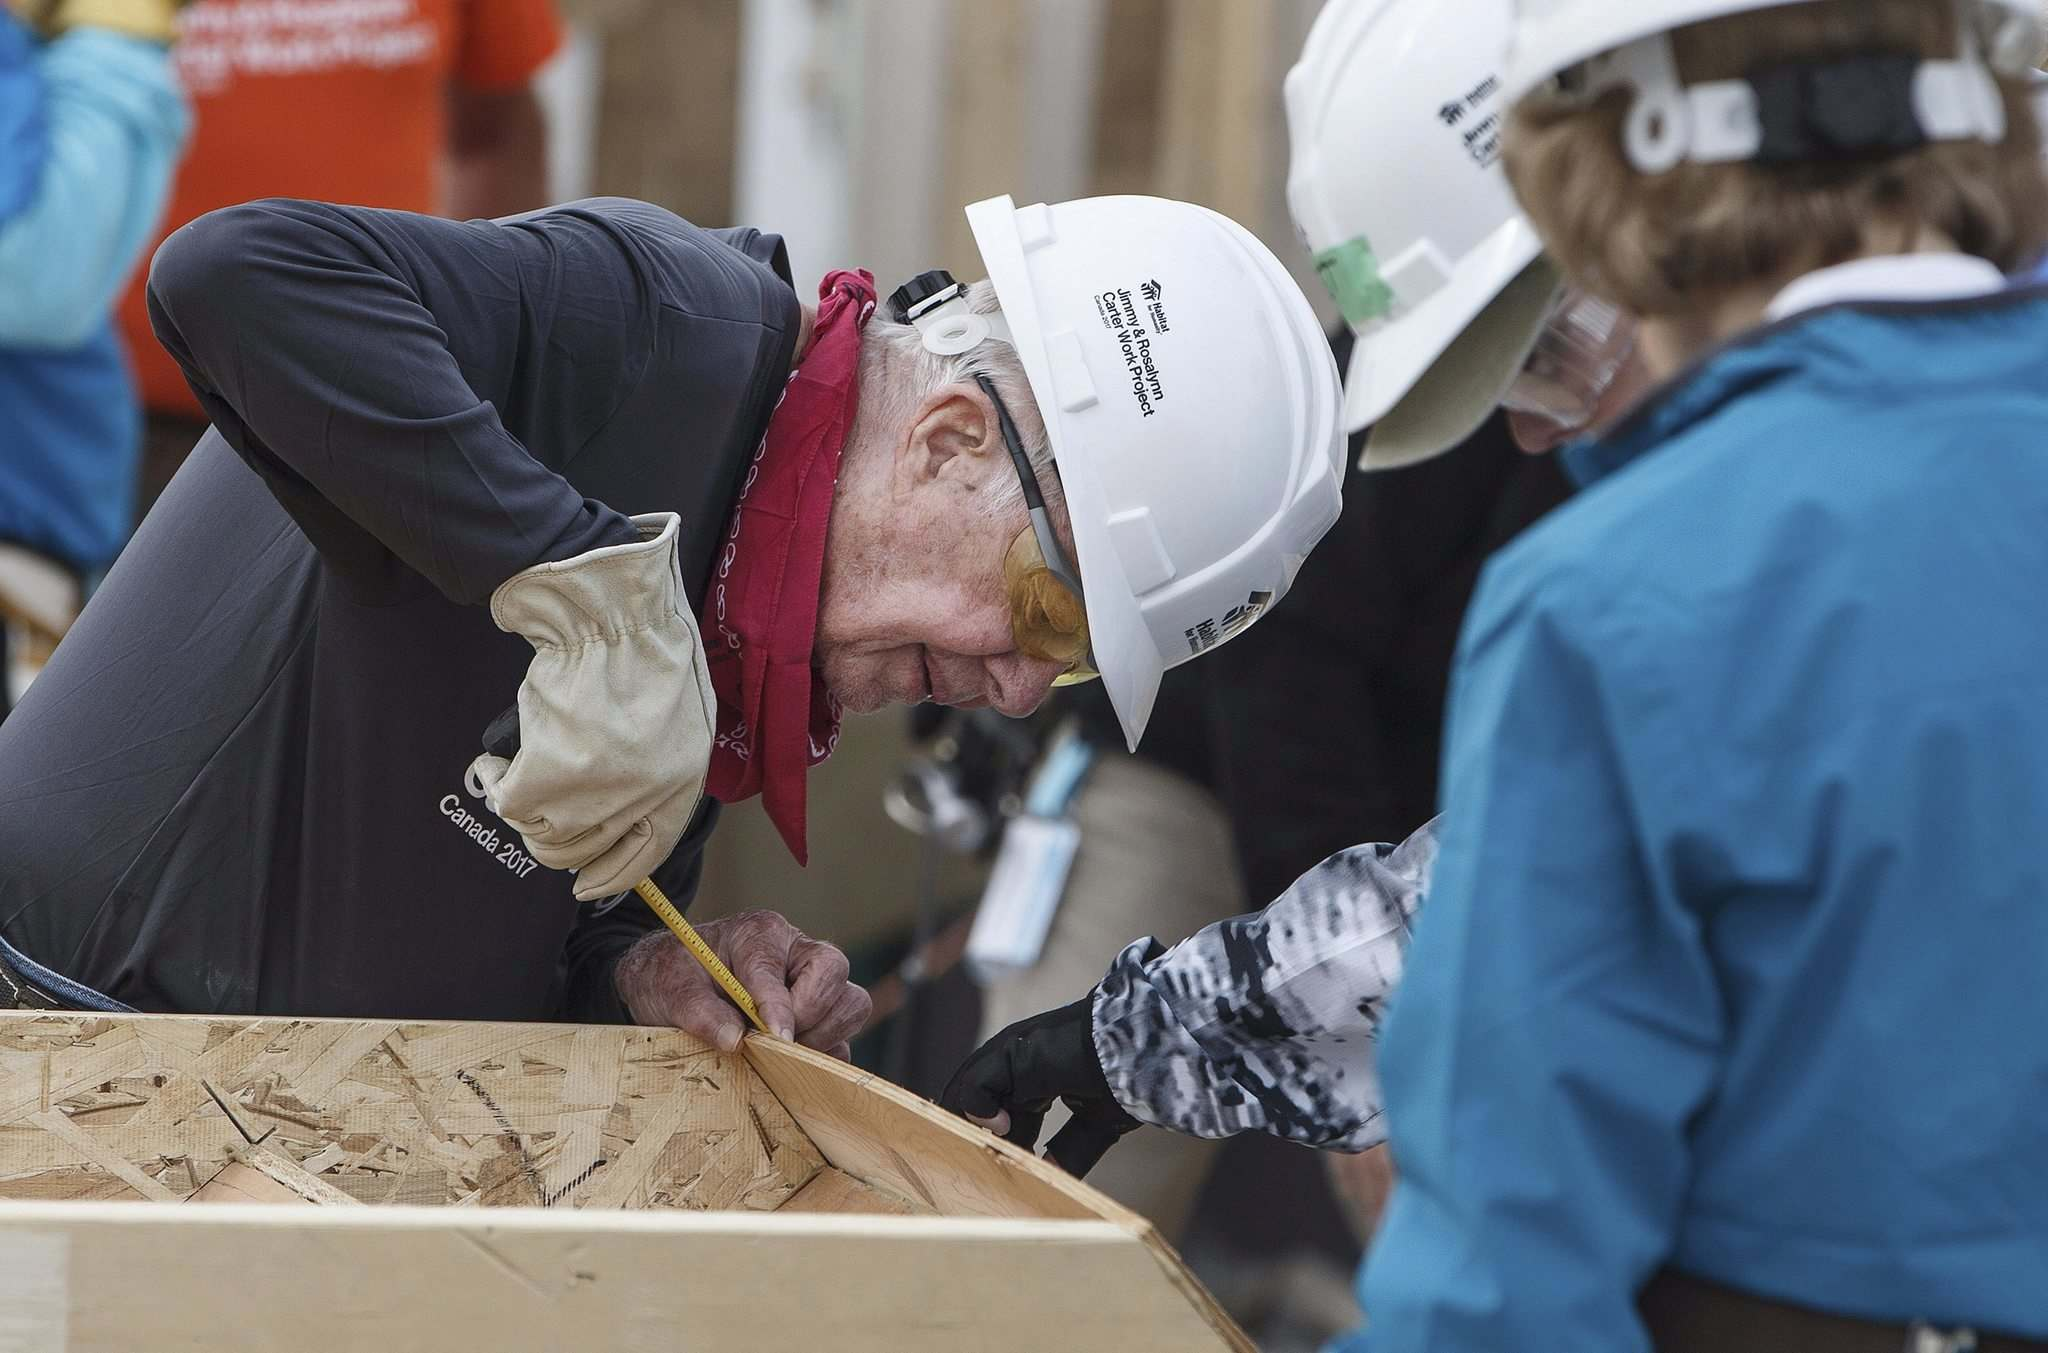 Jimmy Carter treated for dehydration during Habitat build